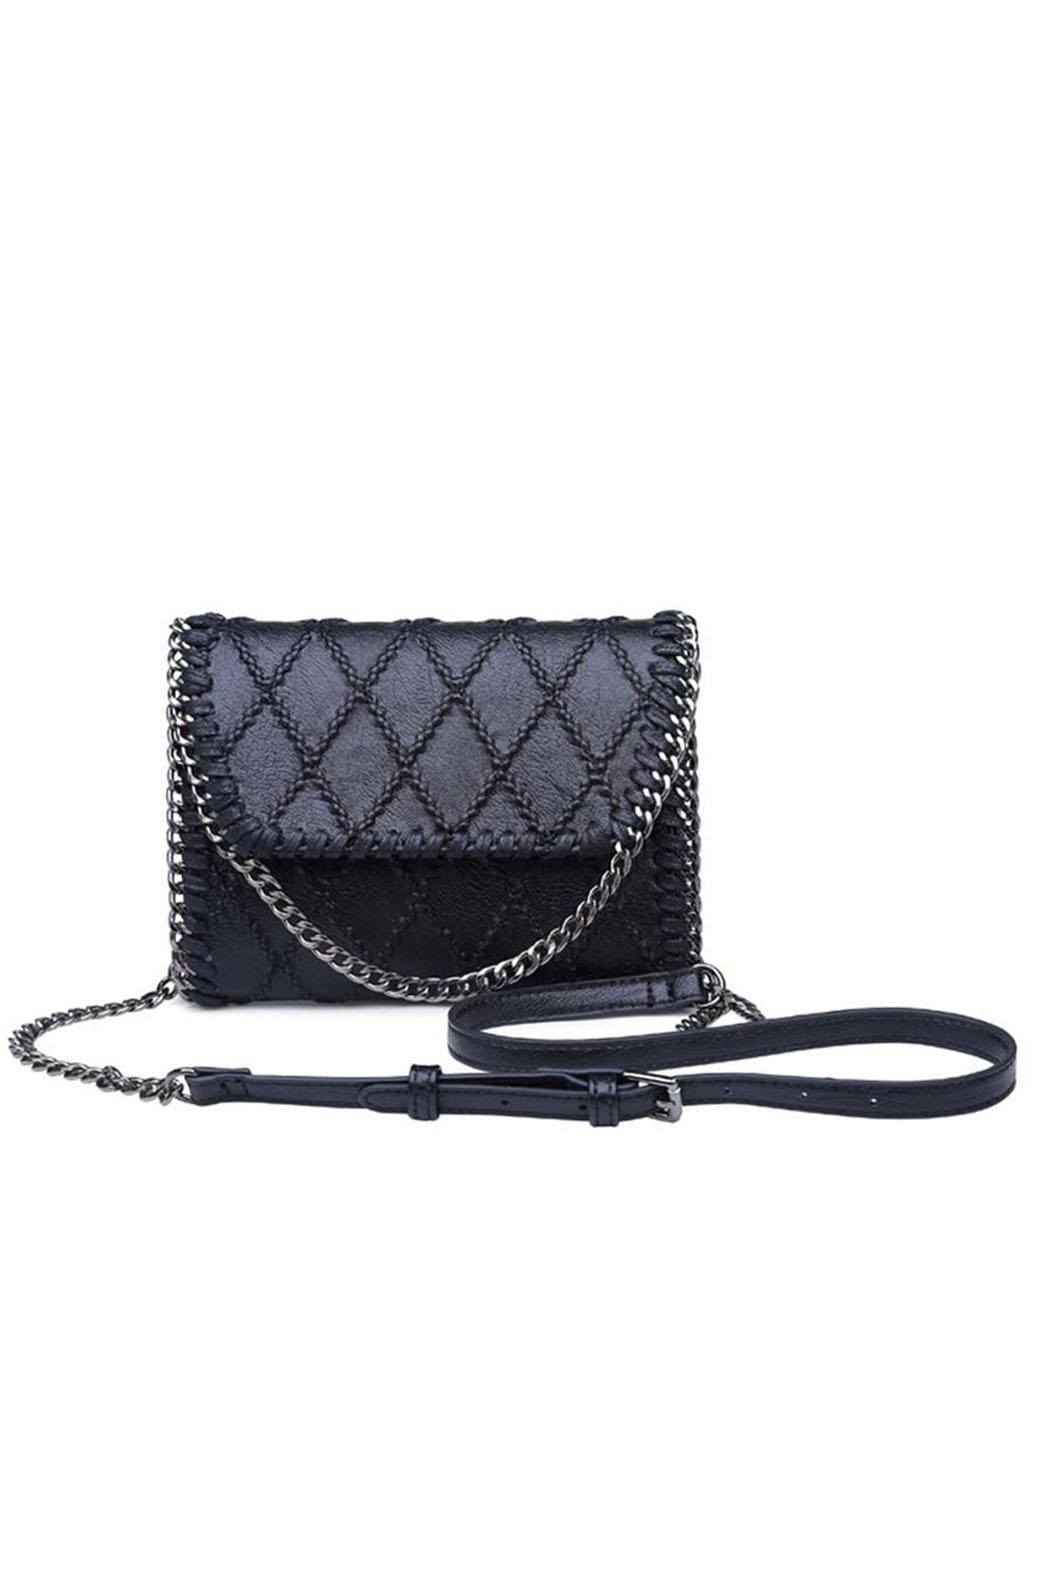 Urban Expressions Misty Crossbody Bag - Side Cropped Image